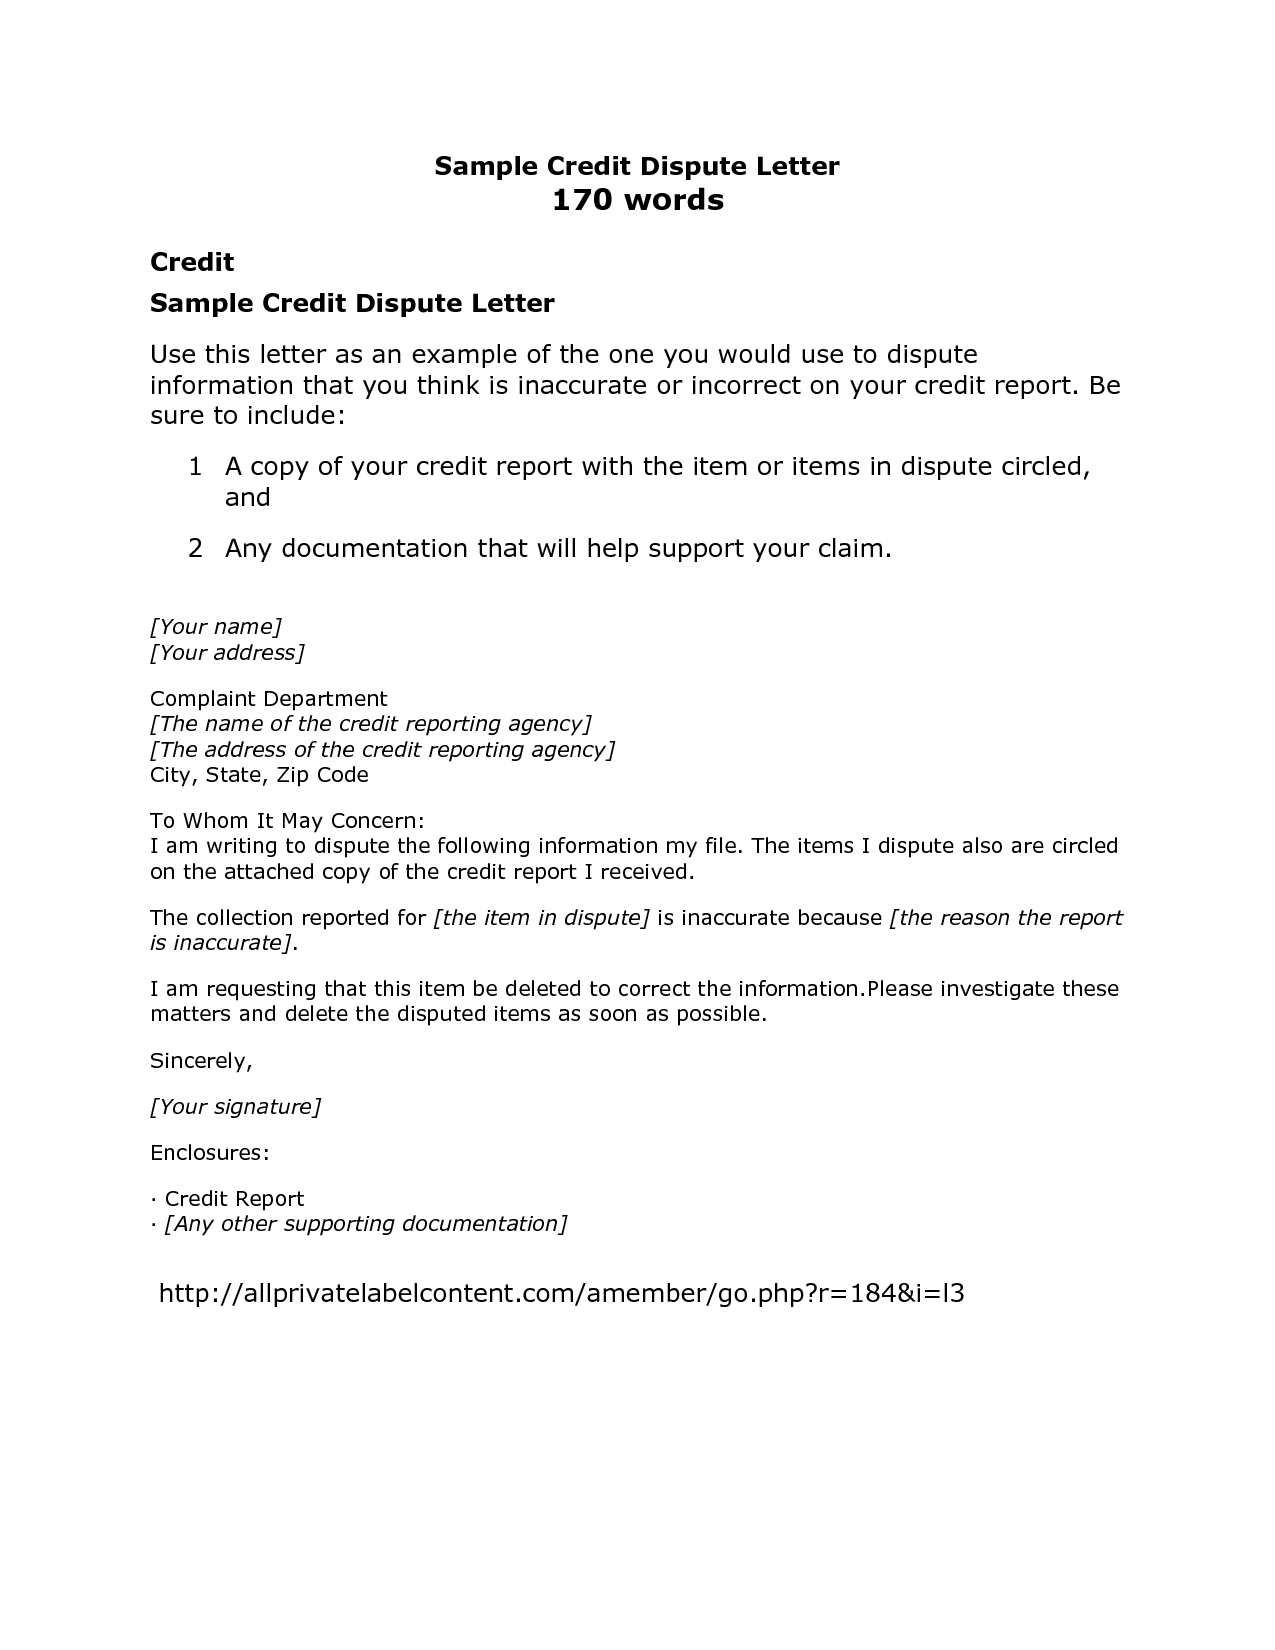 credit report template credit report dispute letter template credit of writing a dispute letter to collection